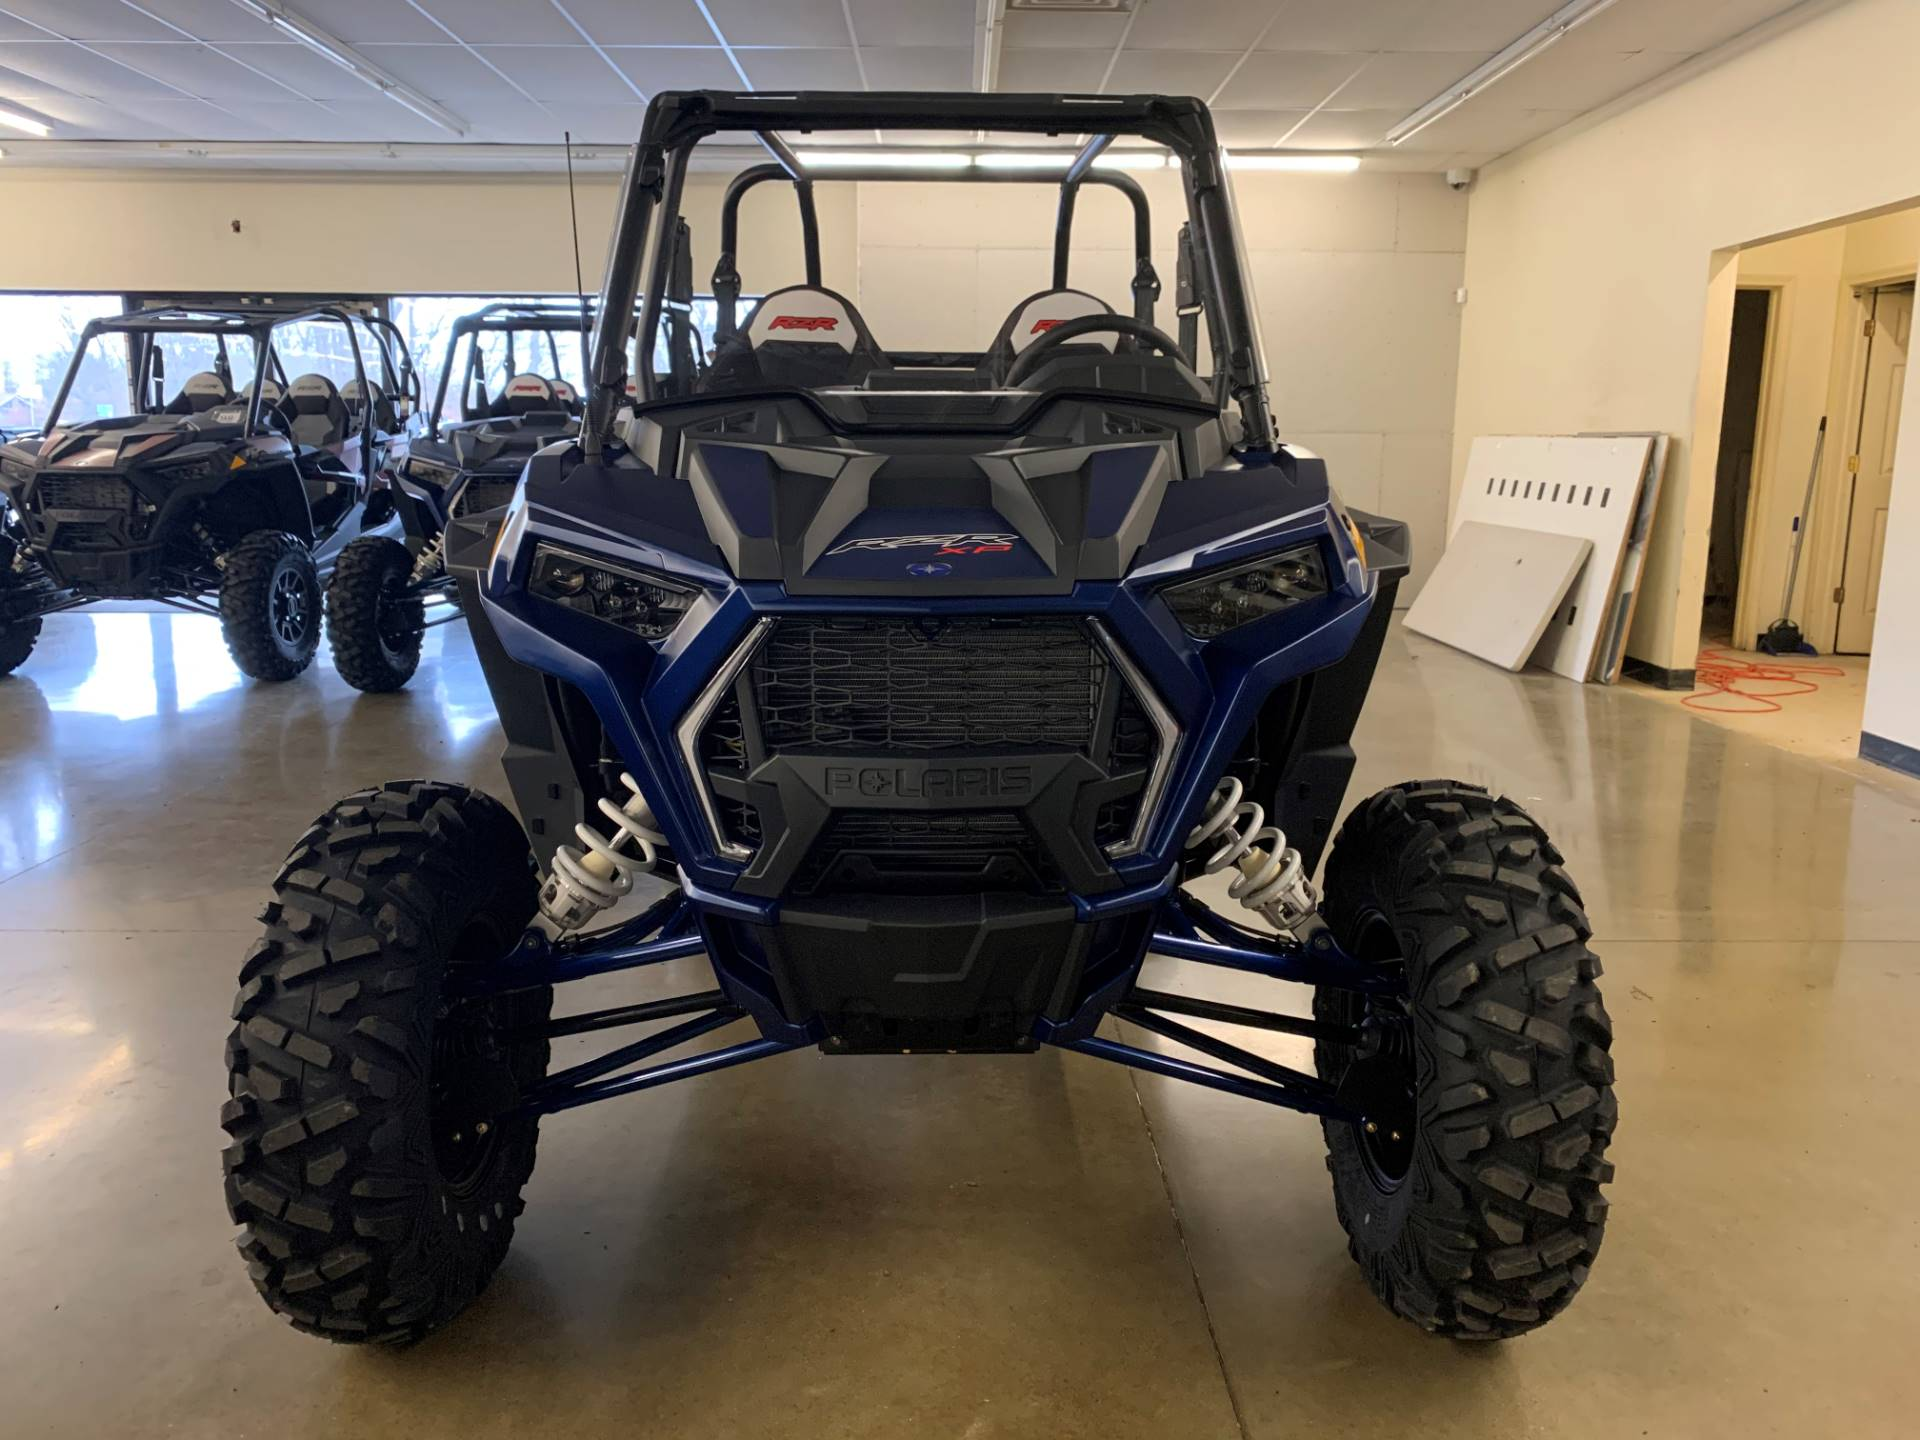 2021 Polaris RZR XP 4 1000 Premium in Chicora, Pennsylvania - Photo 8